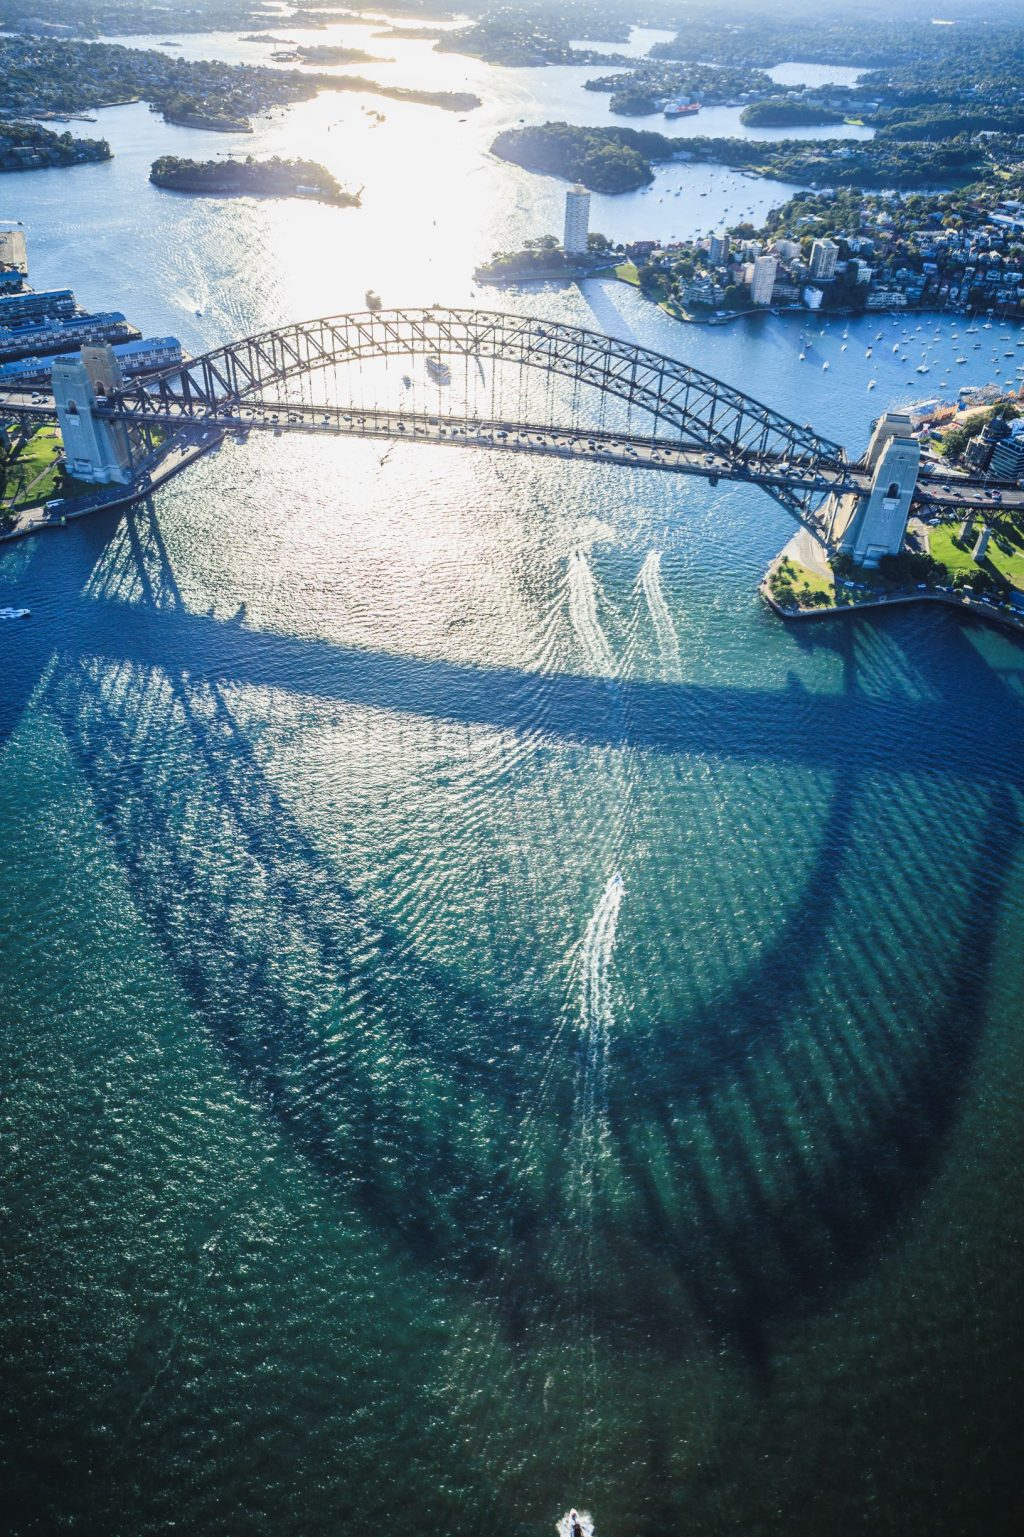 54901-aerial-view-of-sydney-cityscape-sydney-new-s-QAGWRR3_resize